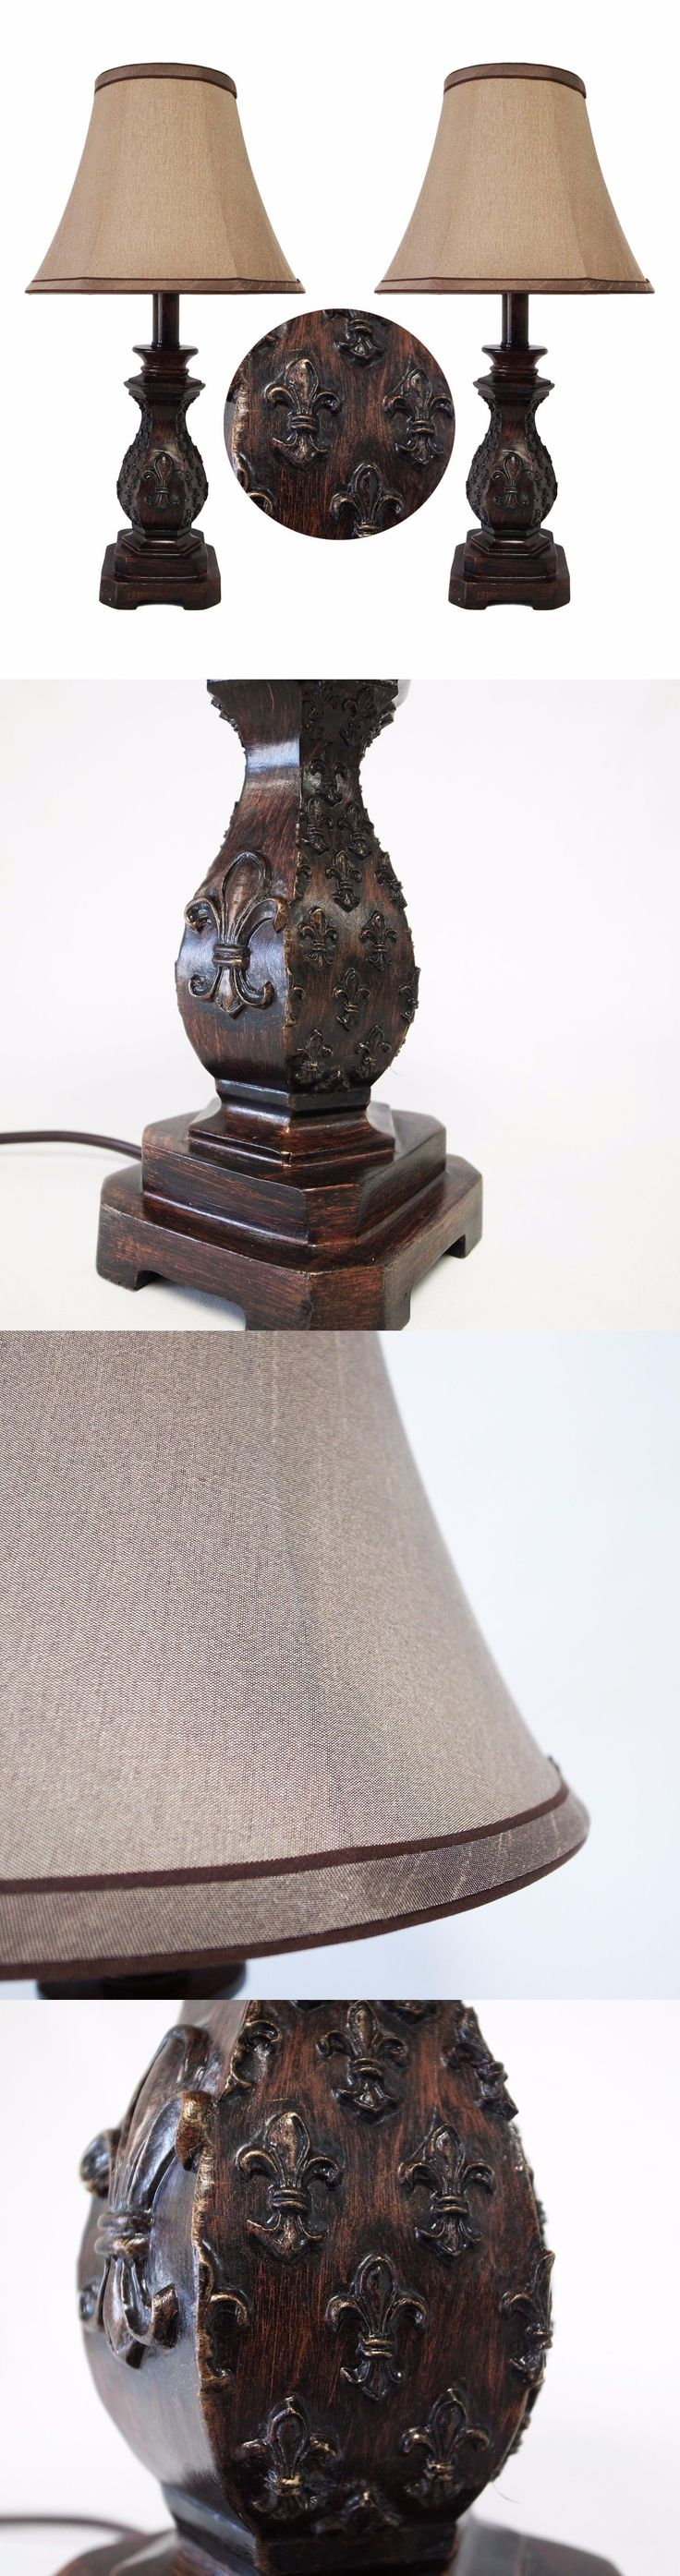 Lamps 112581: 19 H Traditional Dark Bronze Small Table Lamps Set Of 2 -> BUY IT NOW ONLY: $39.99 on eBay!